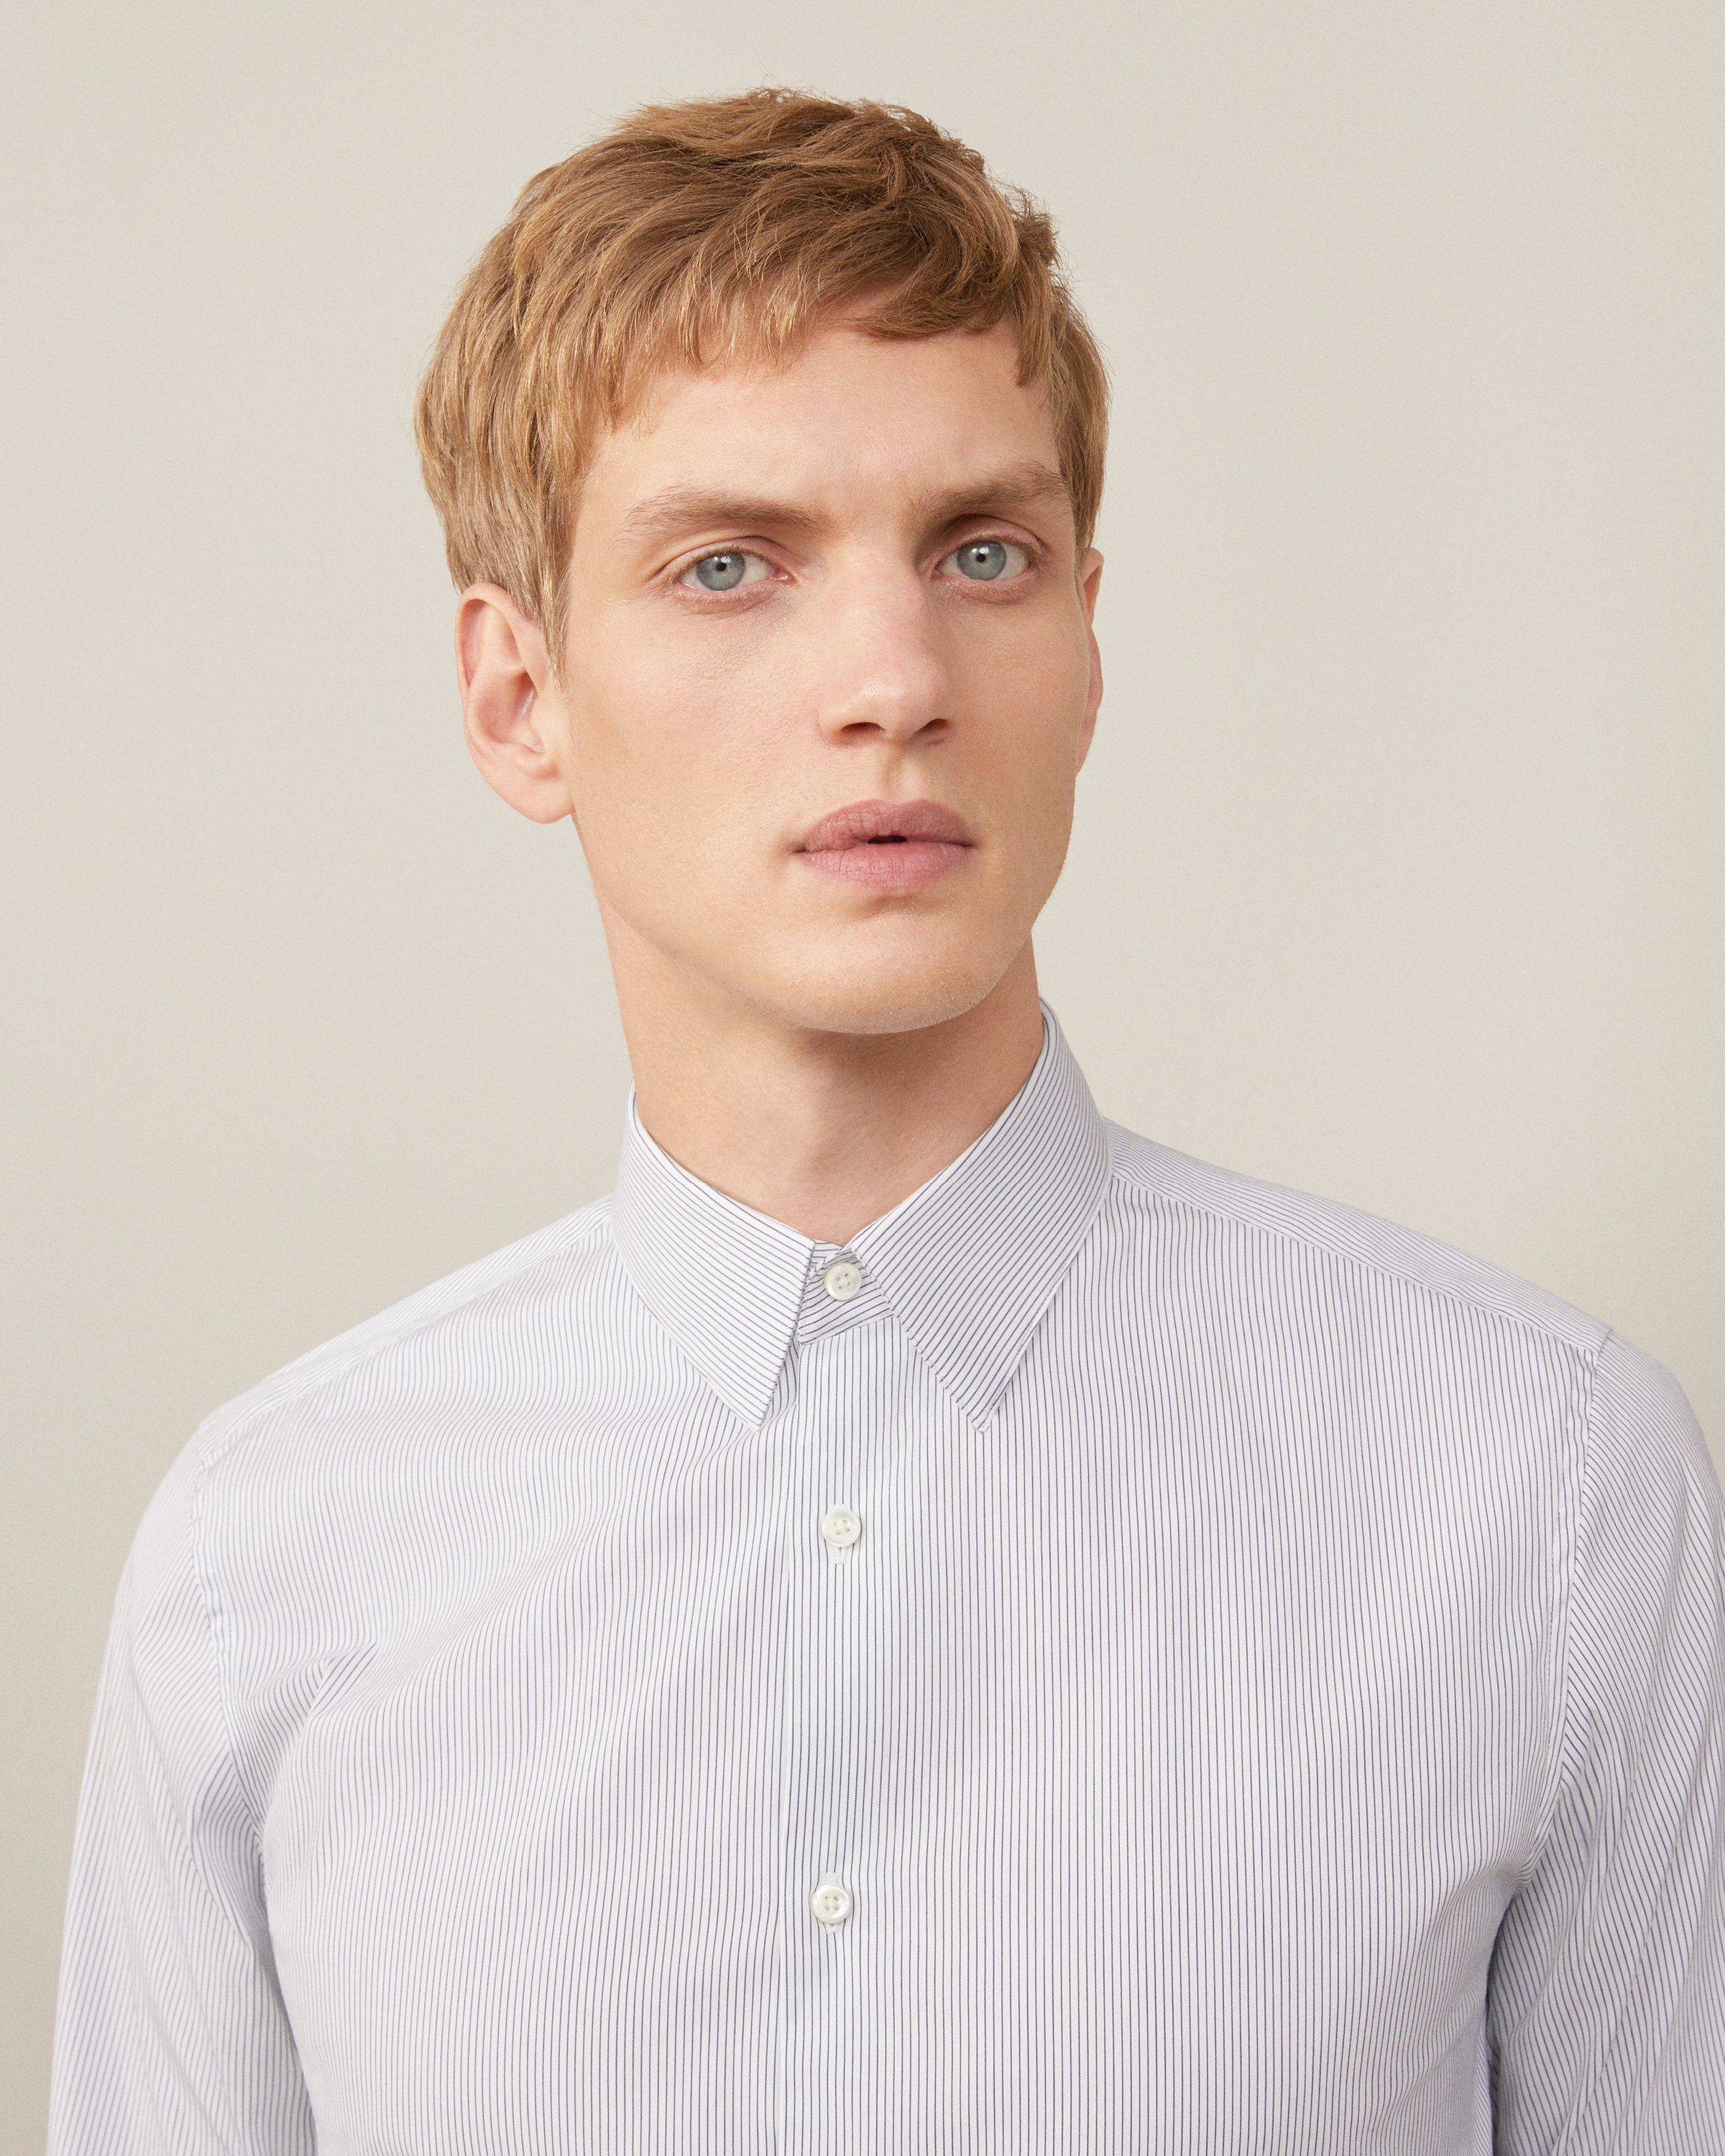 Edgy Crop with Bangs - Men's Haircut Styles for Round Face